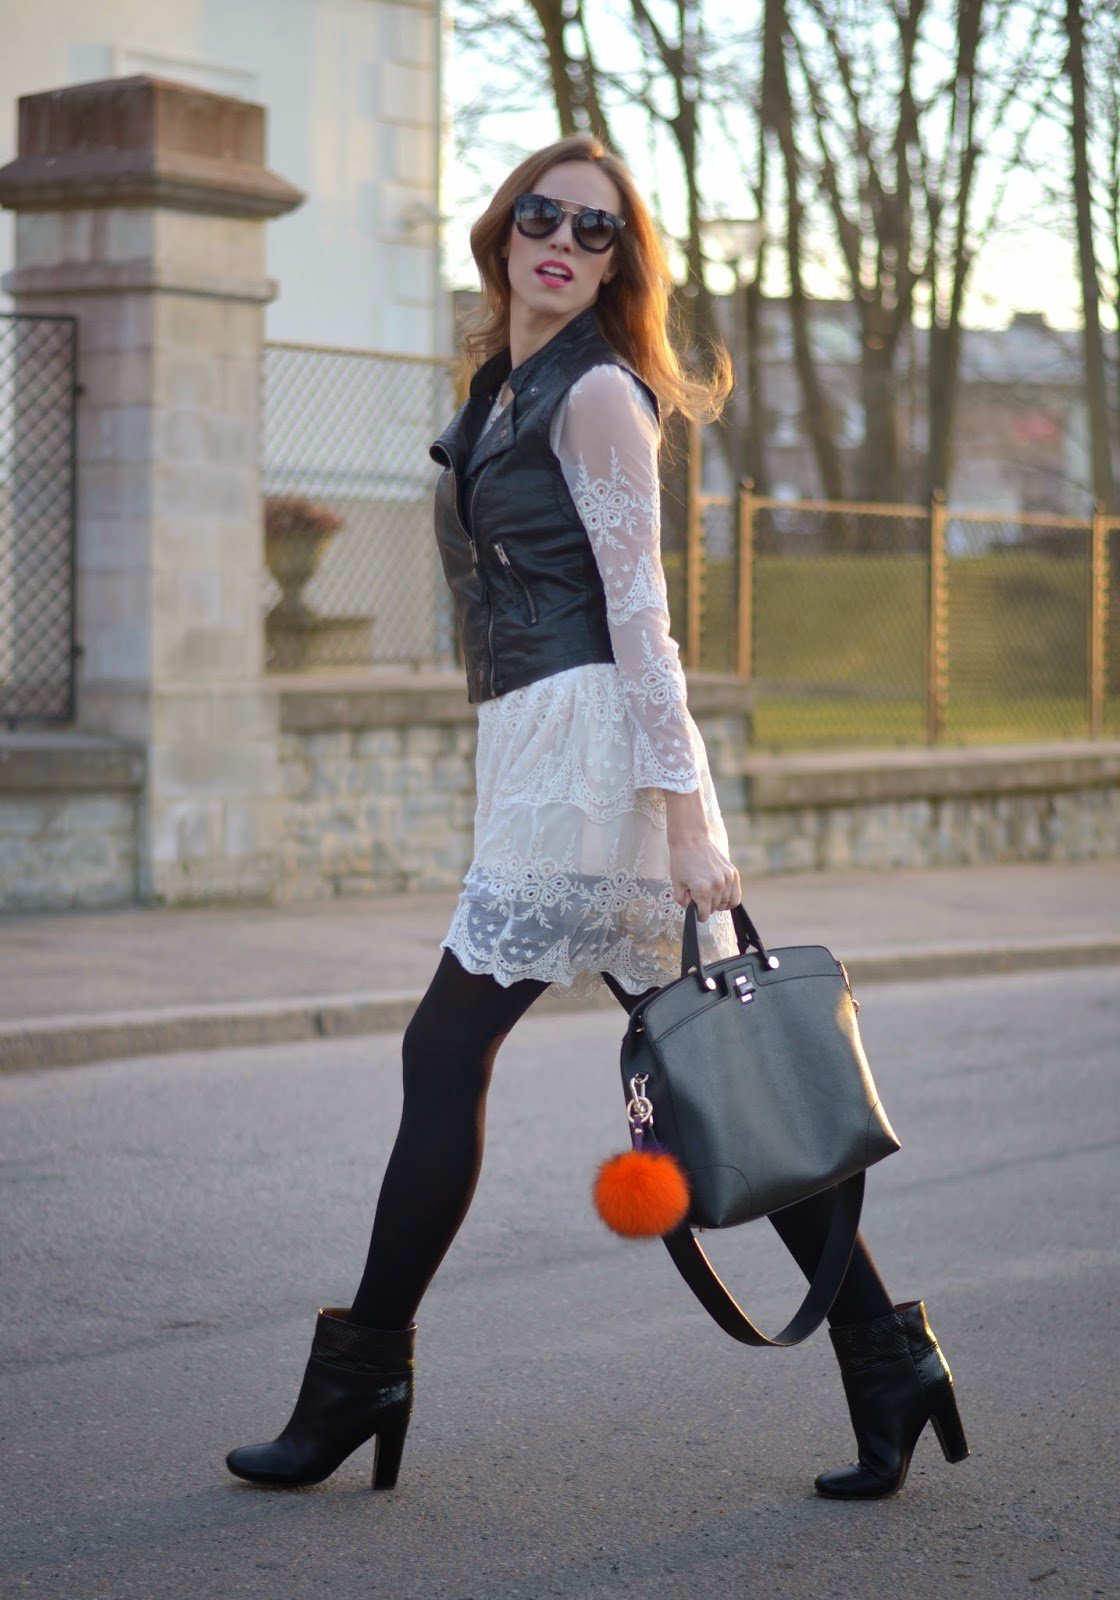 furla-bag-chloe-black-ankle-boots-white-lace-dress kristjaana mere